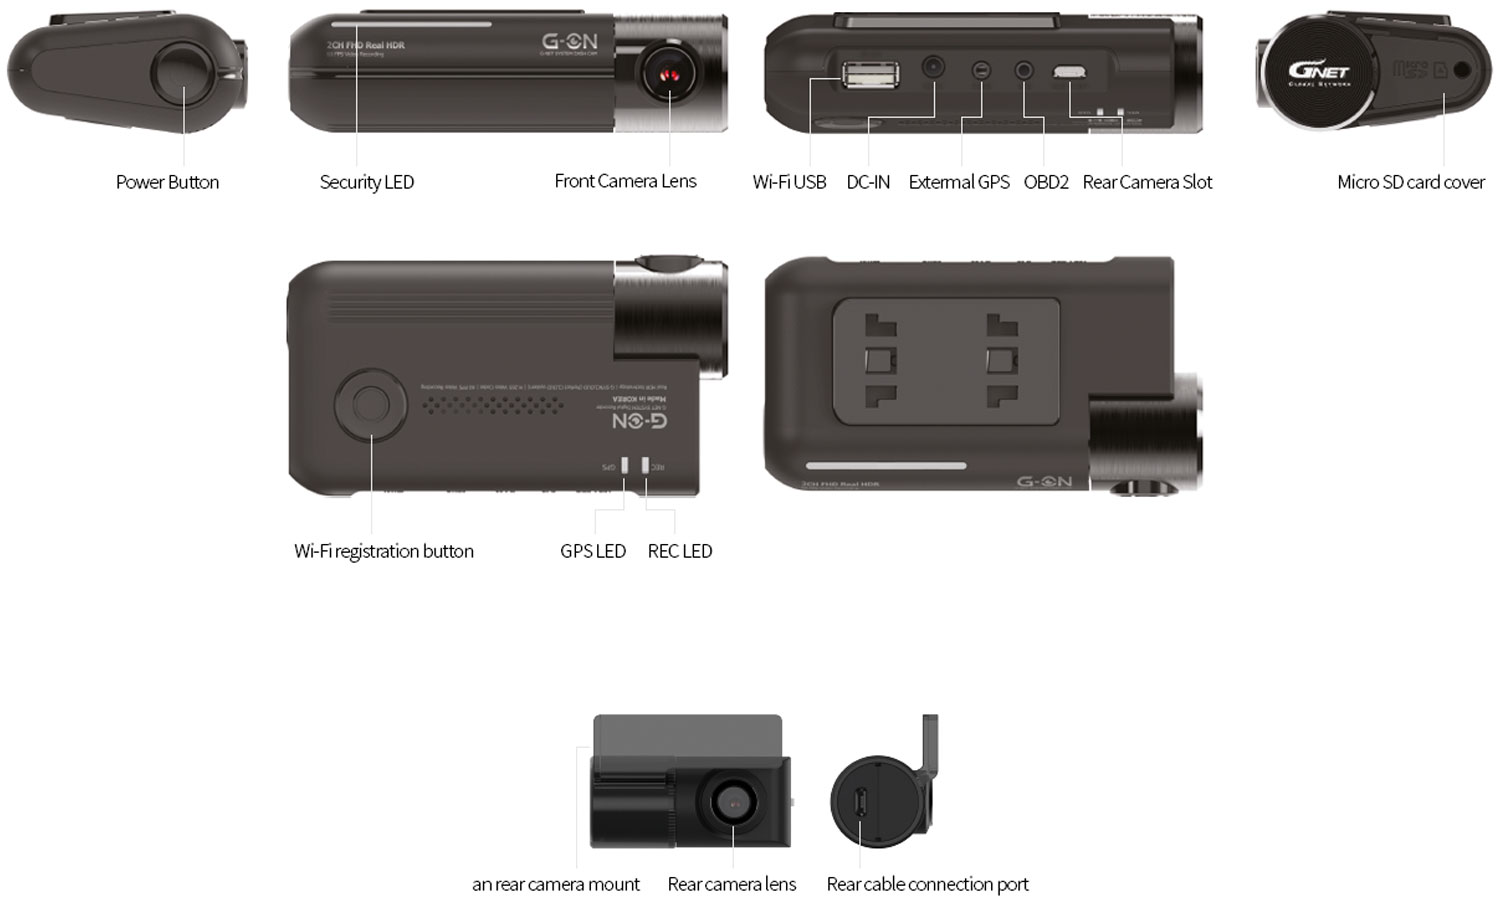 gnet-g-one-cloud-dashcam_22.jpg